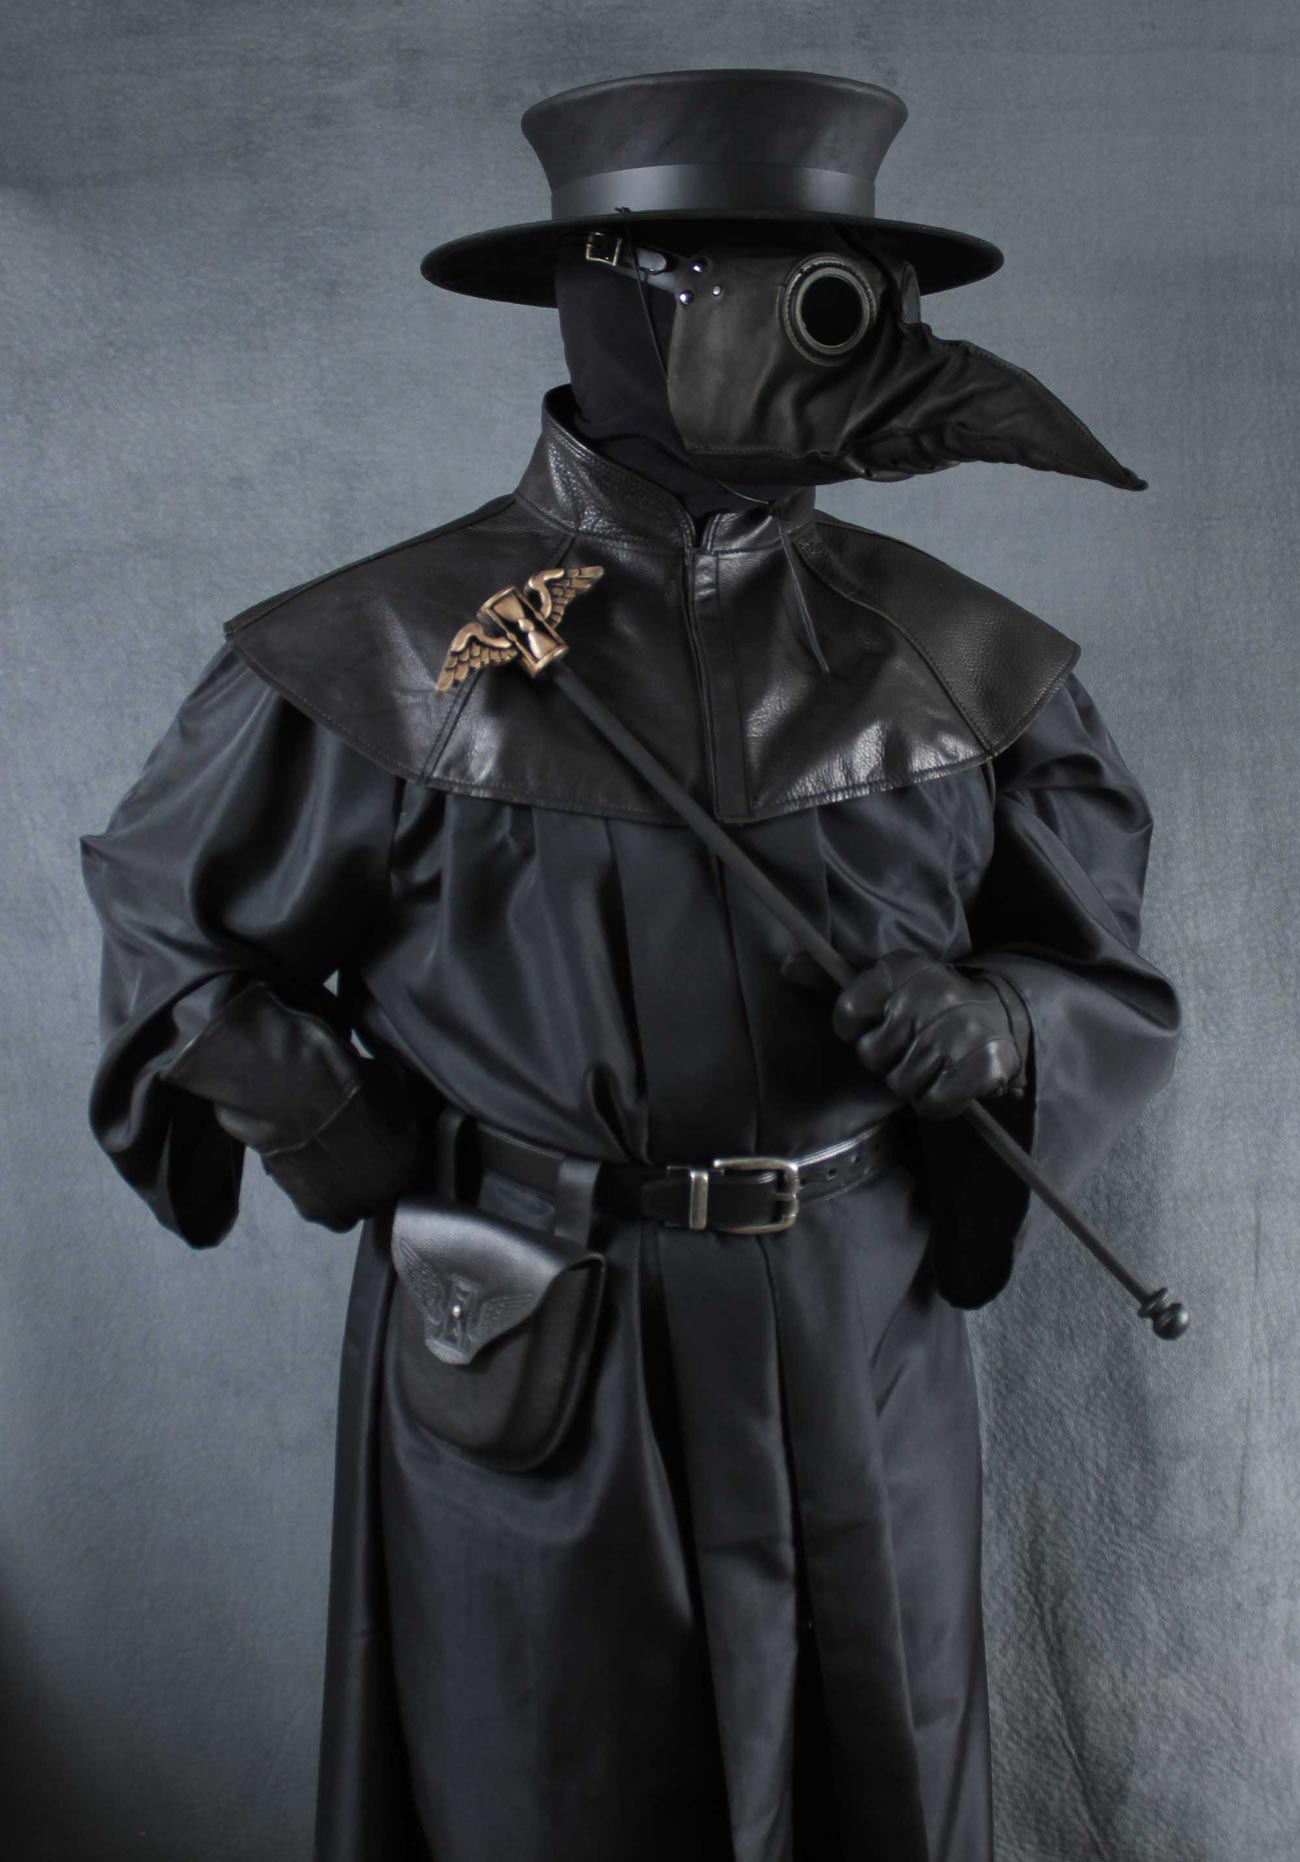 Plague Doctor Costume by Tom Banwell